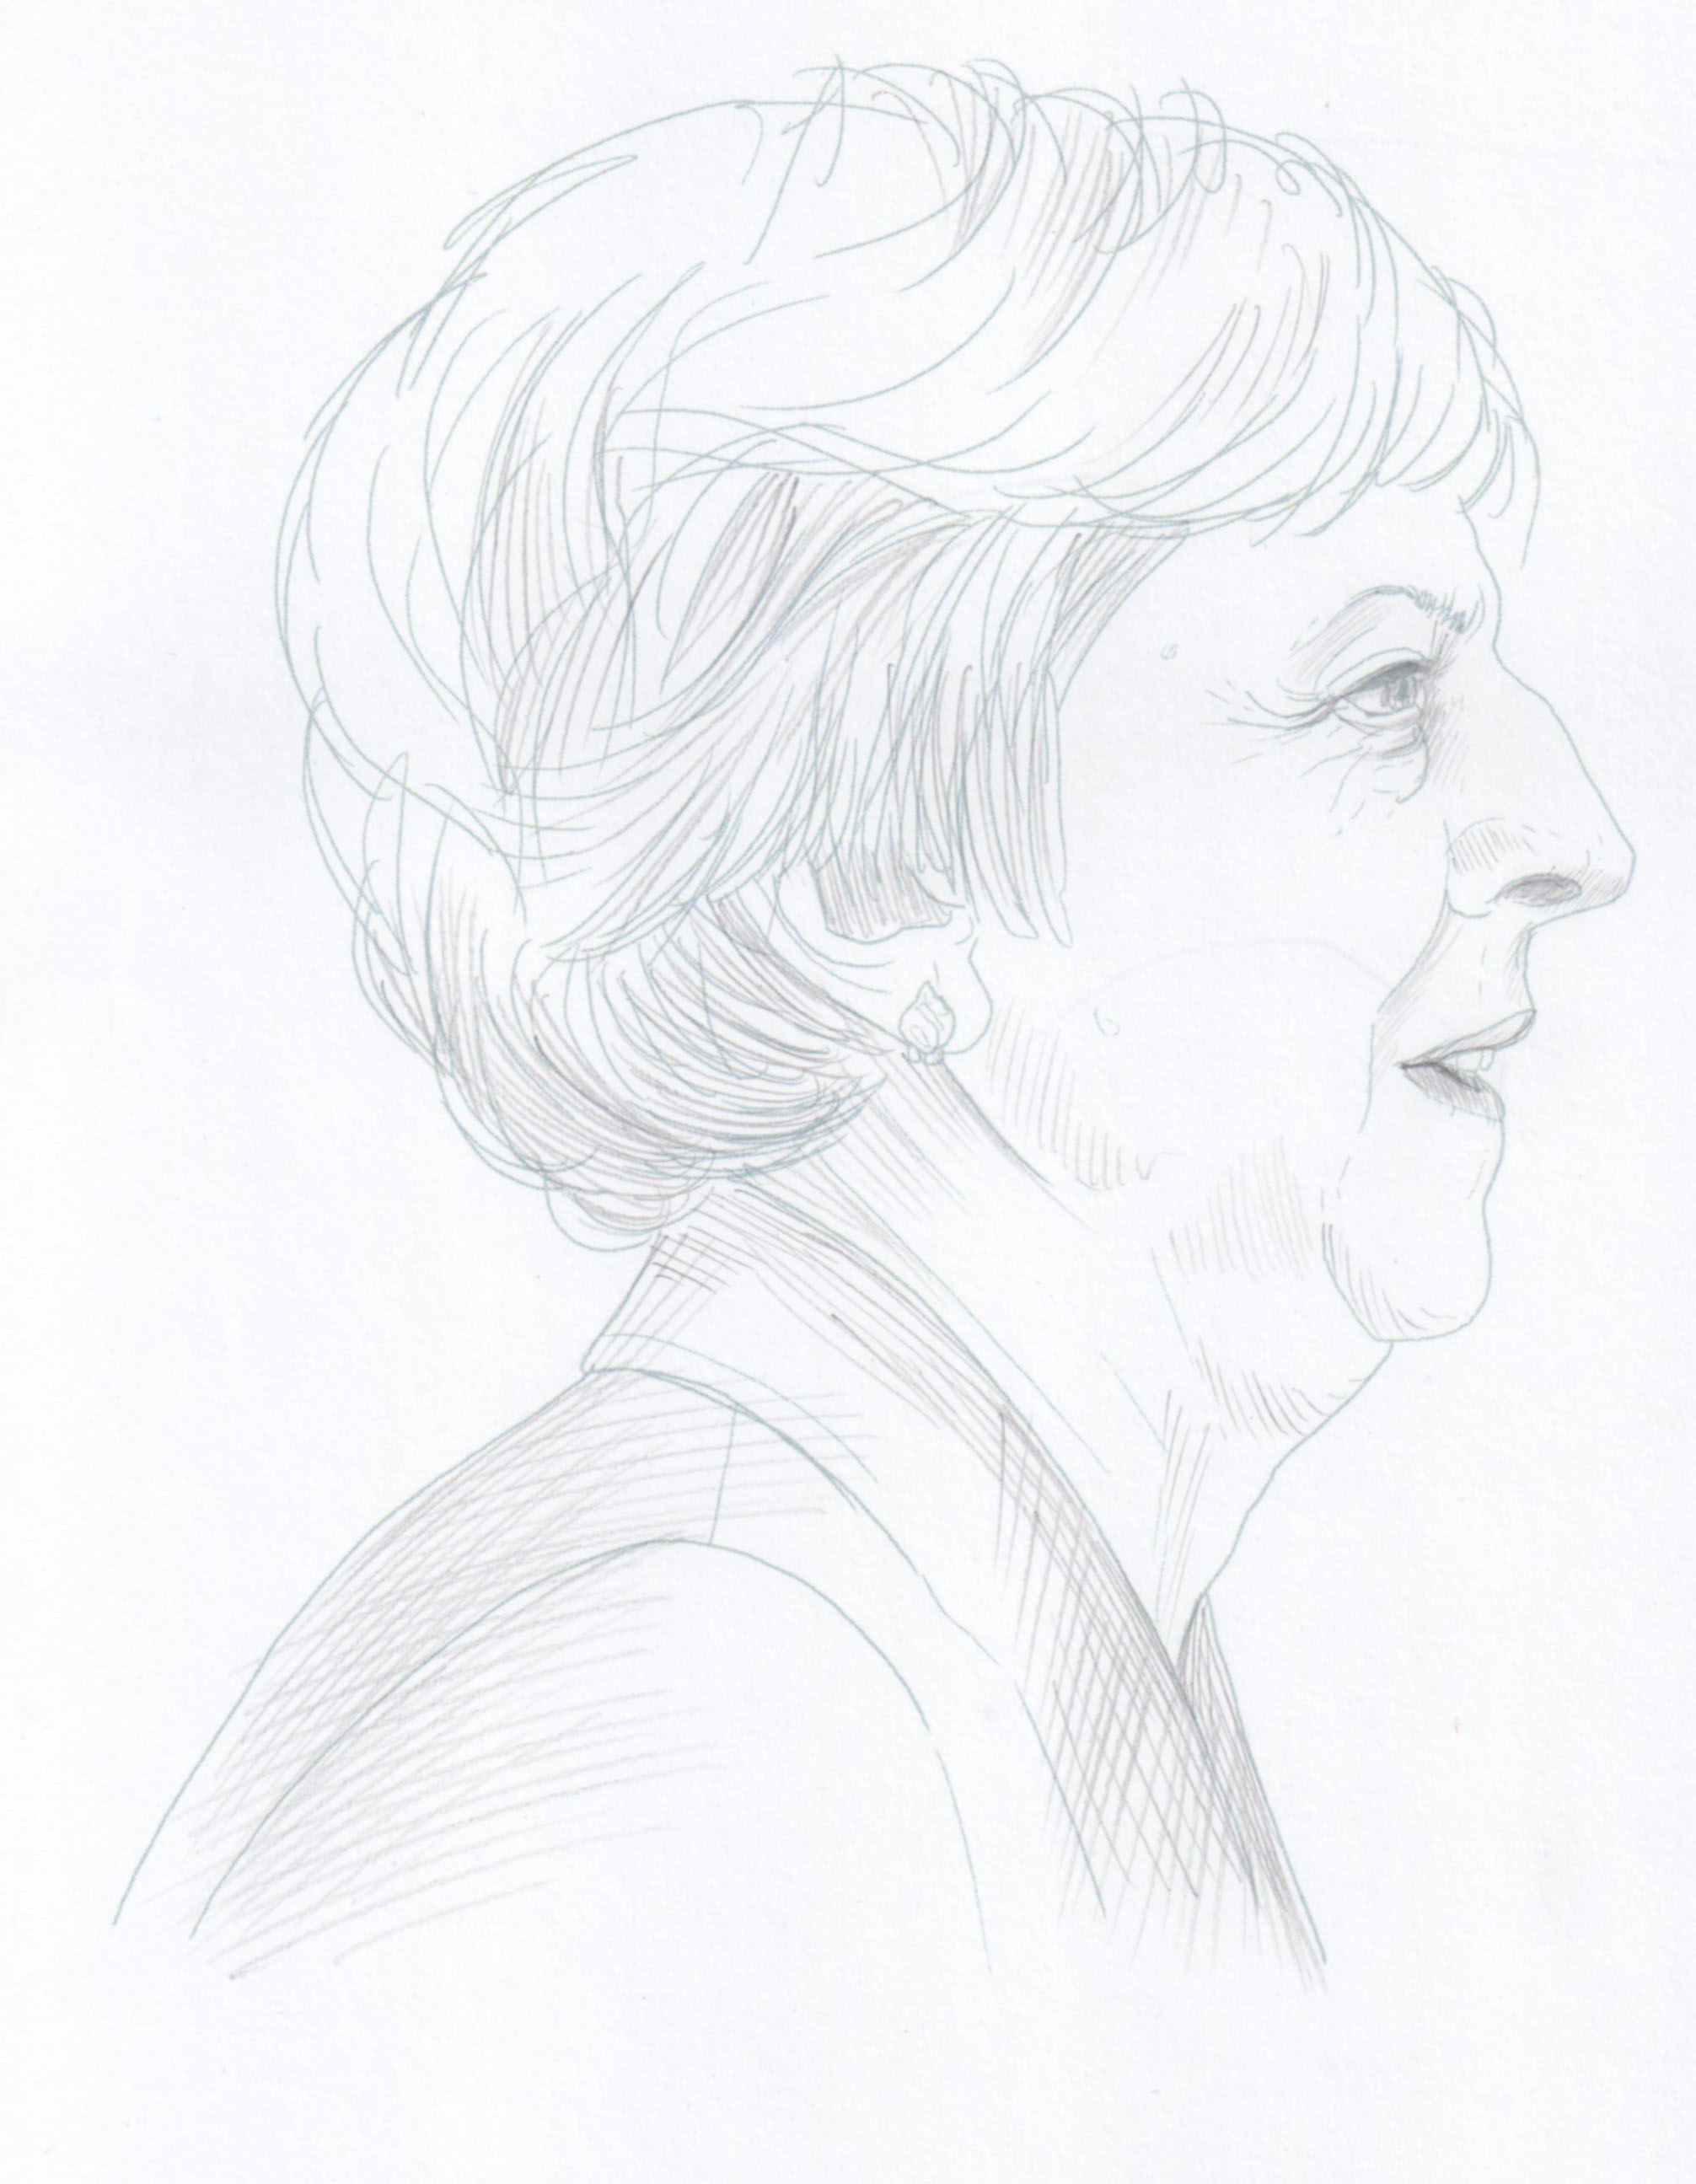 mrs May looking like a postage stamp